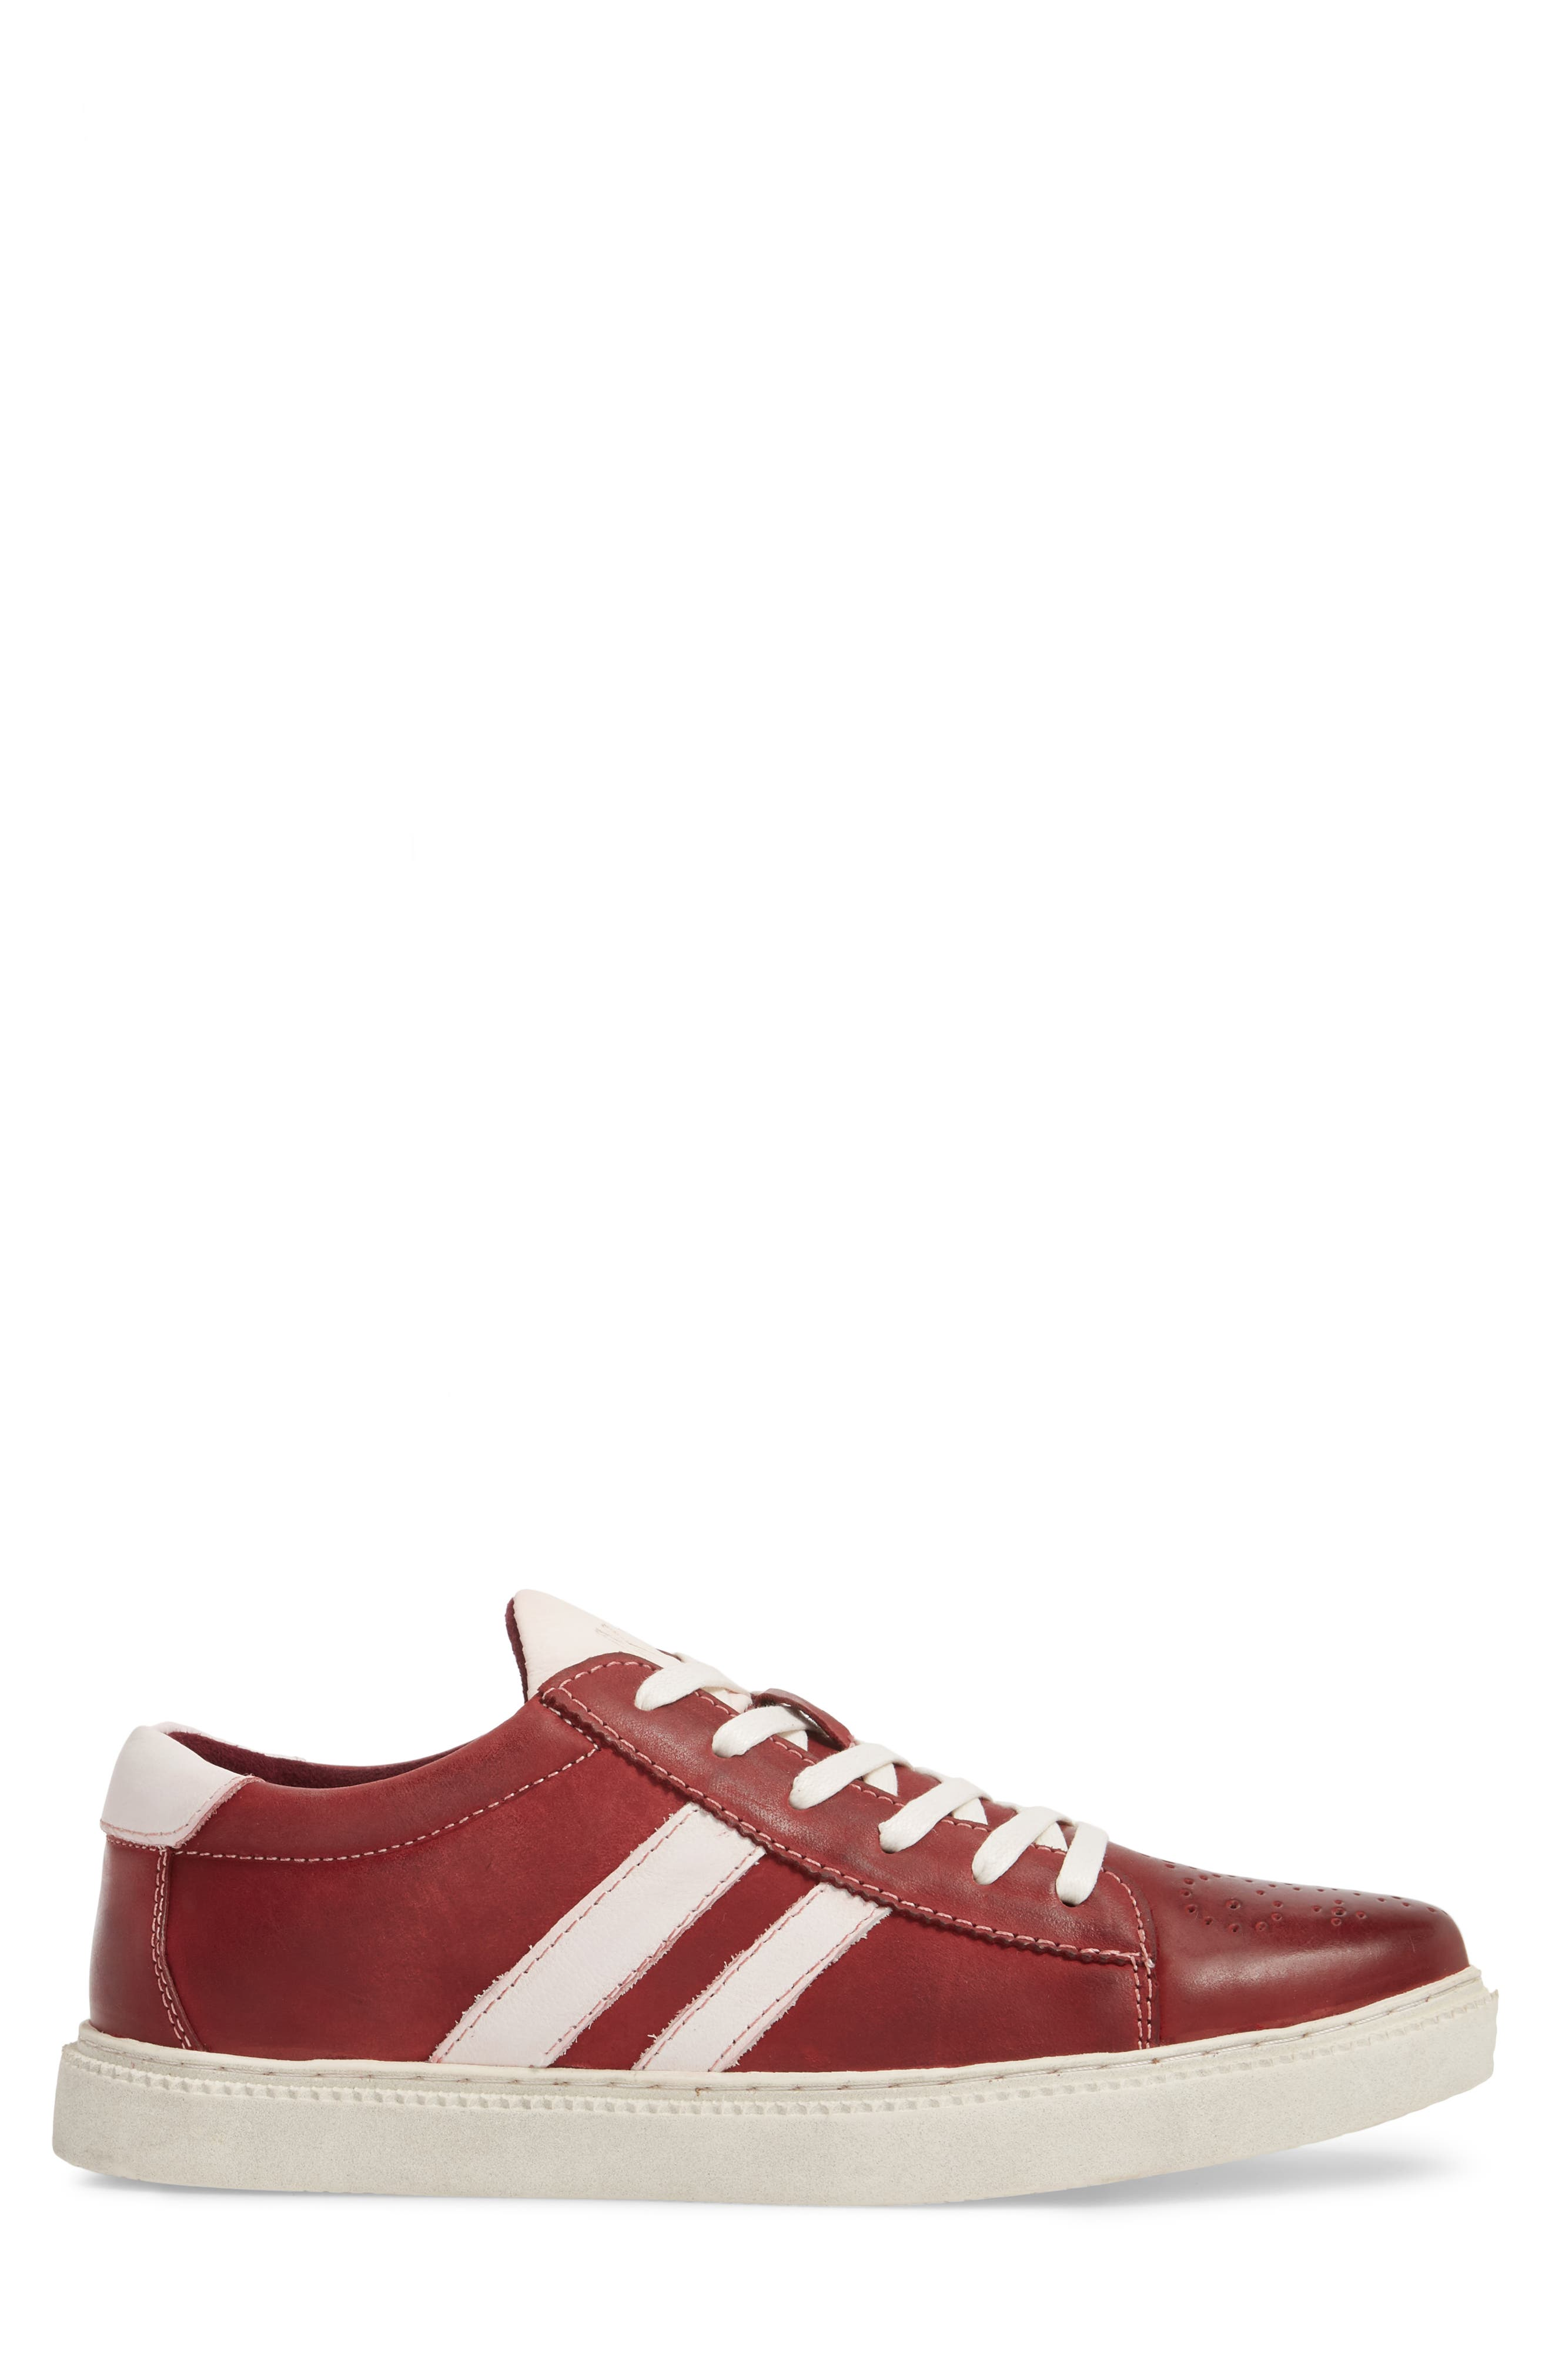 Madox Low Top Sneaker,                             Alternate thumbnail 3, color,                             Red